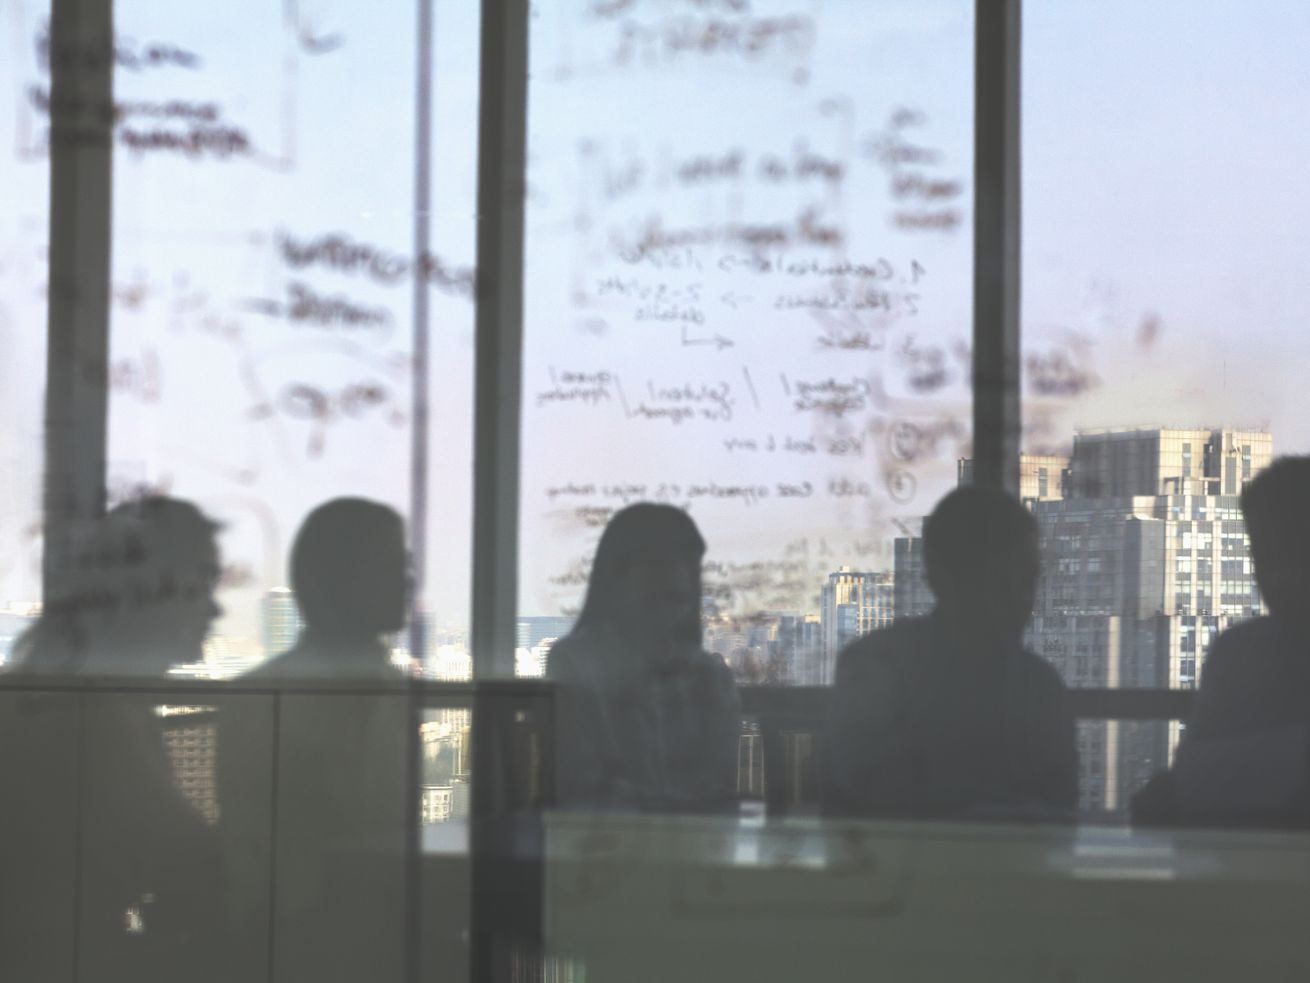 Silhouettes of board members and a written-on white board seen through glass.